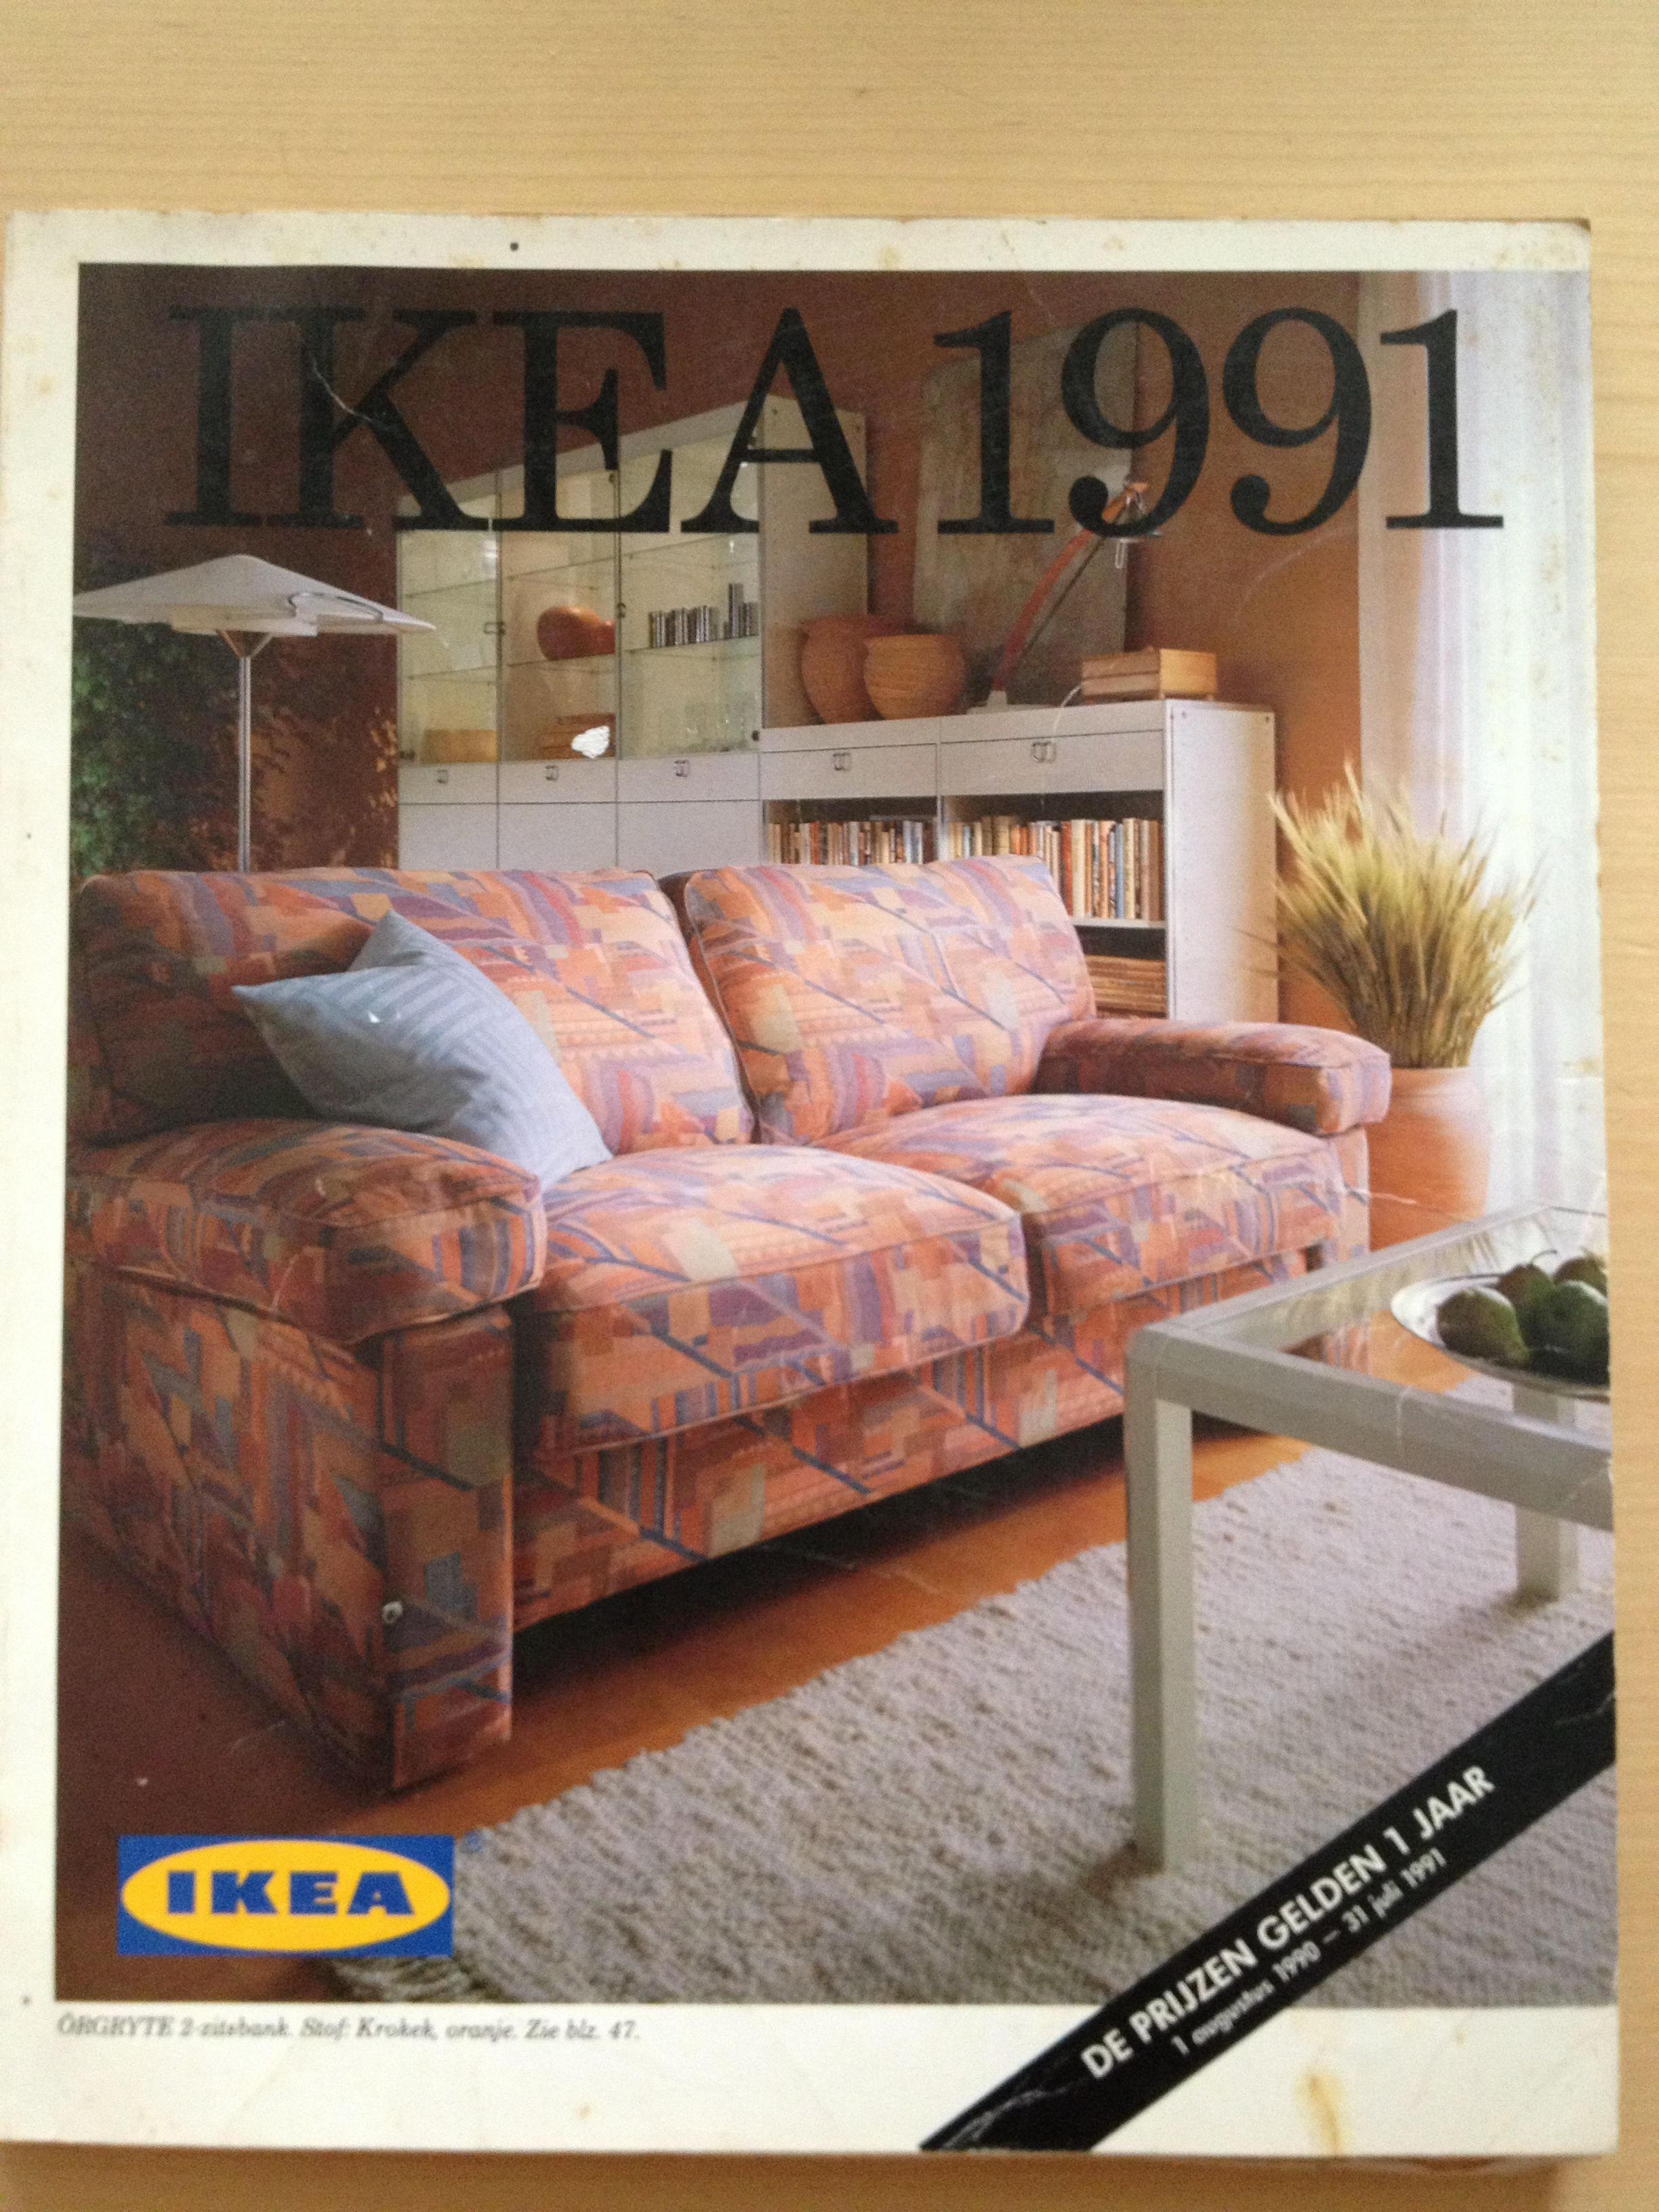 Ikea catalogue 1991 For the home